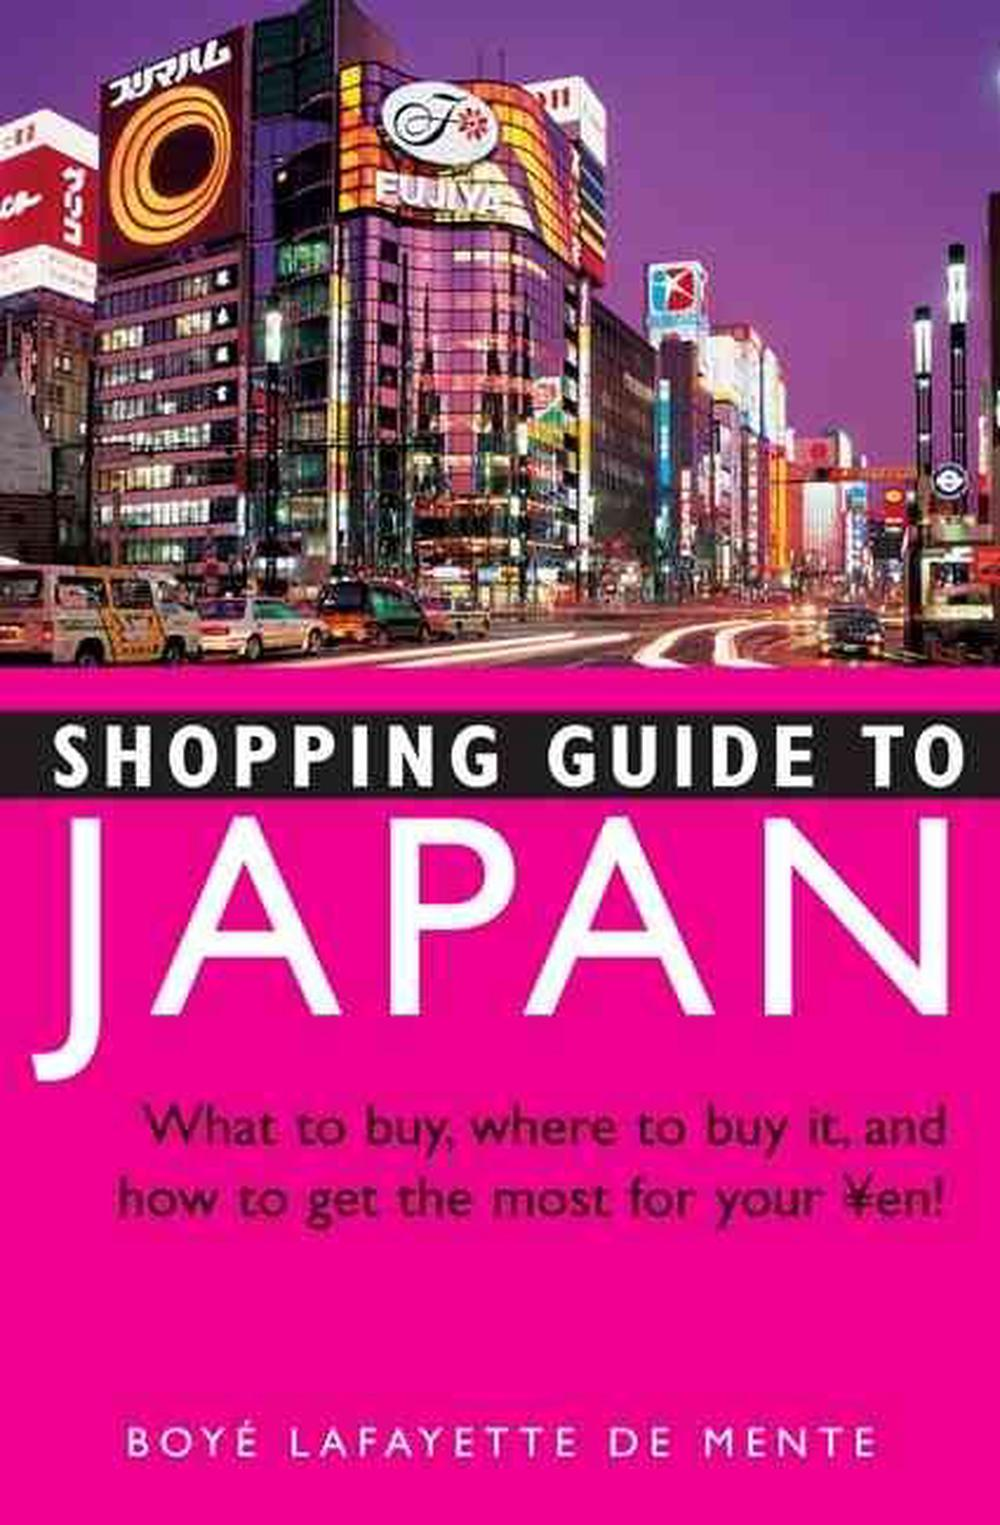 Shopping Guide to Japan: What to Buy, Where to Buy It, and How to Get the Most Out of Your Yen!